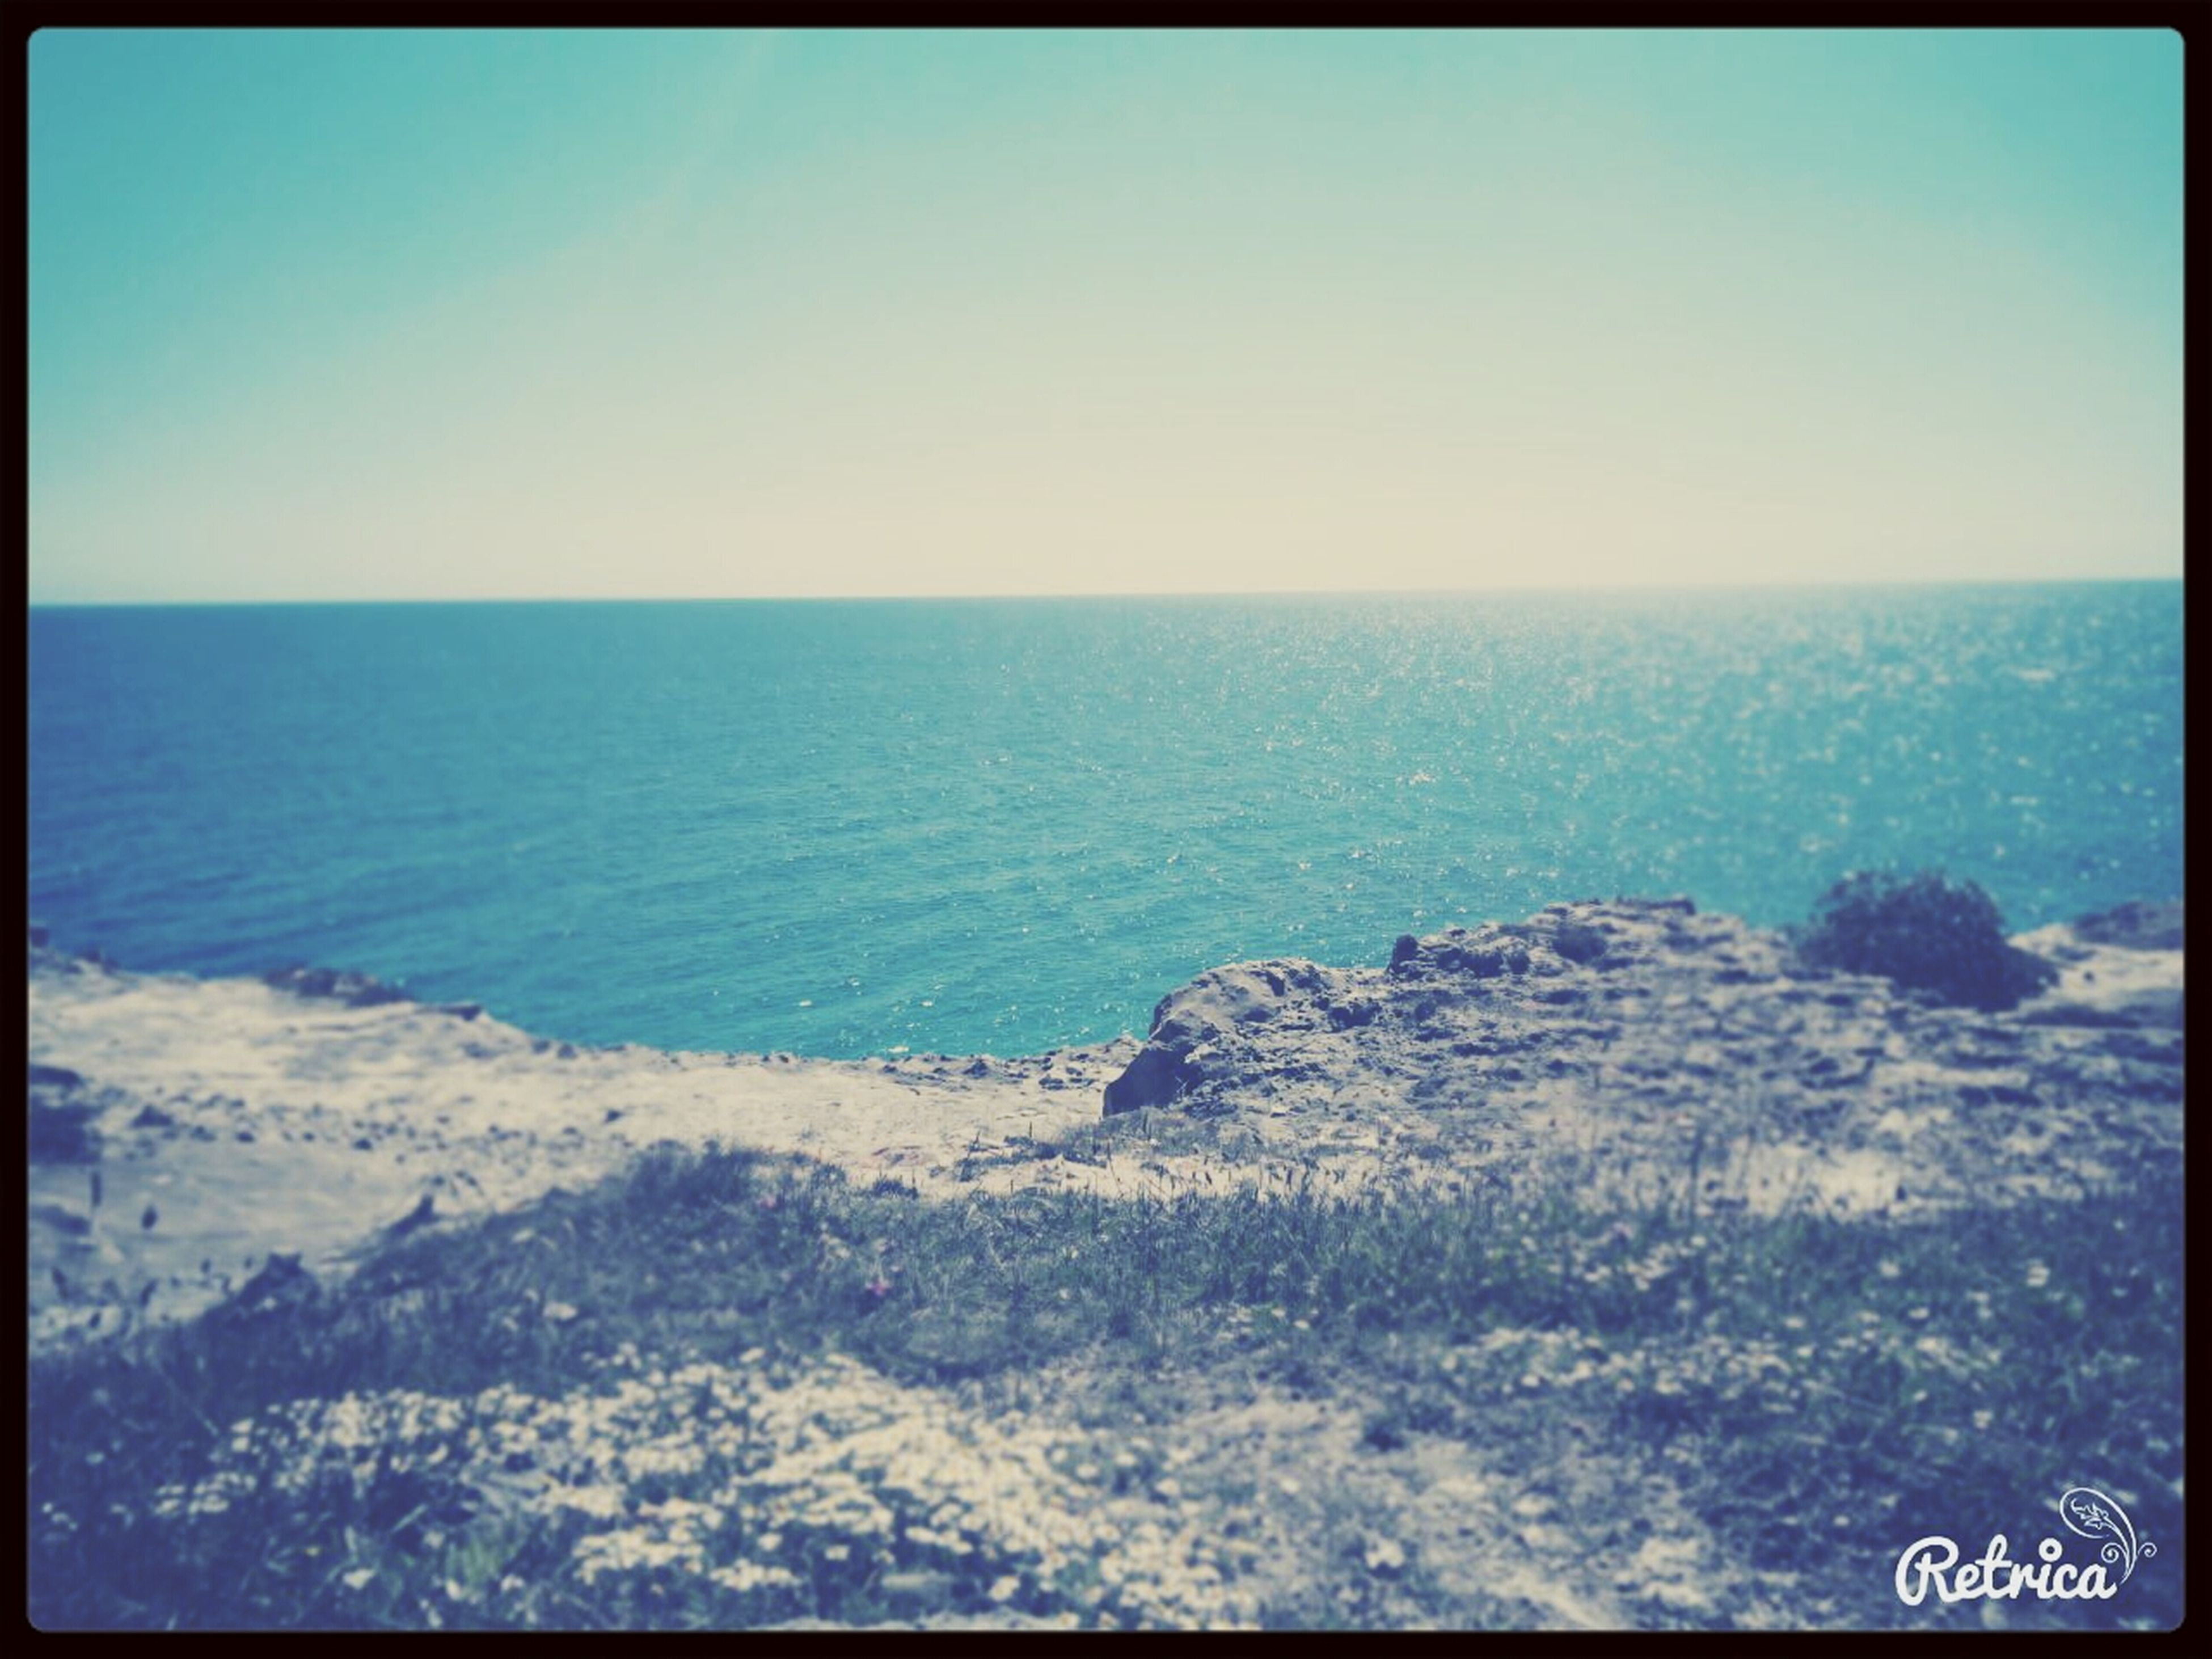 sea, transfer print, horizon over water, water, scenics, tranquil scene, auto post production filter, tranquility, beauty in nature, clear sky, nature, blue, beach, shore, sky, coastline, copy space, idyllic, rock - object, day